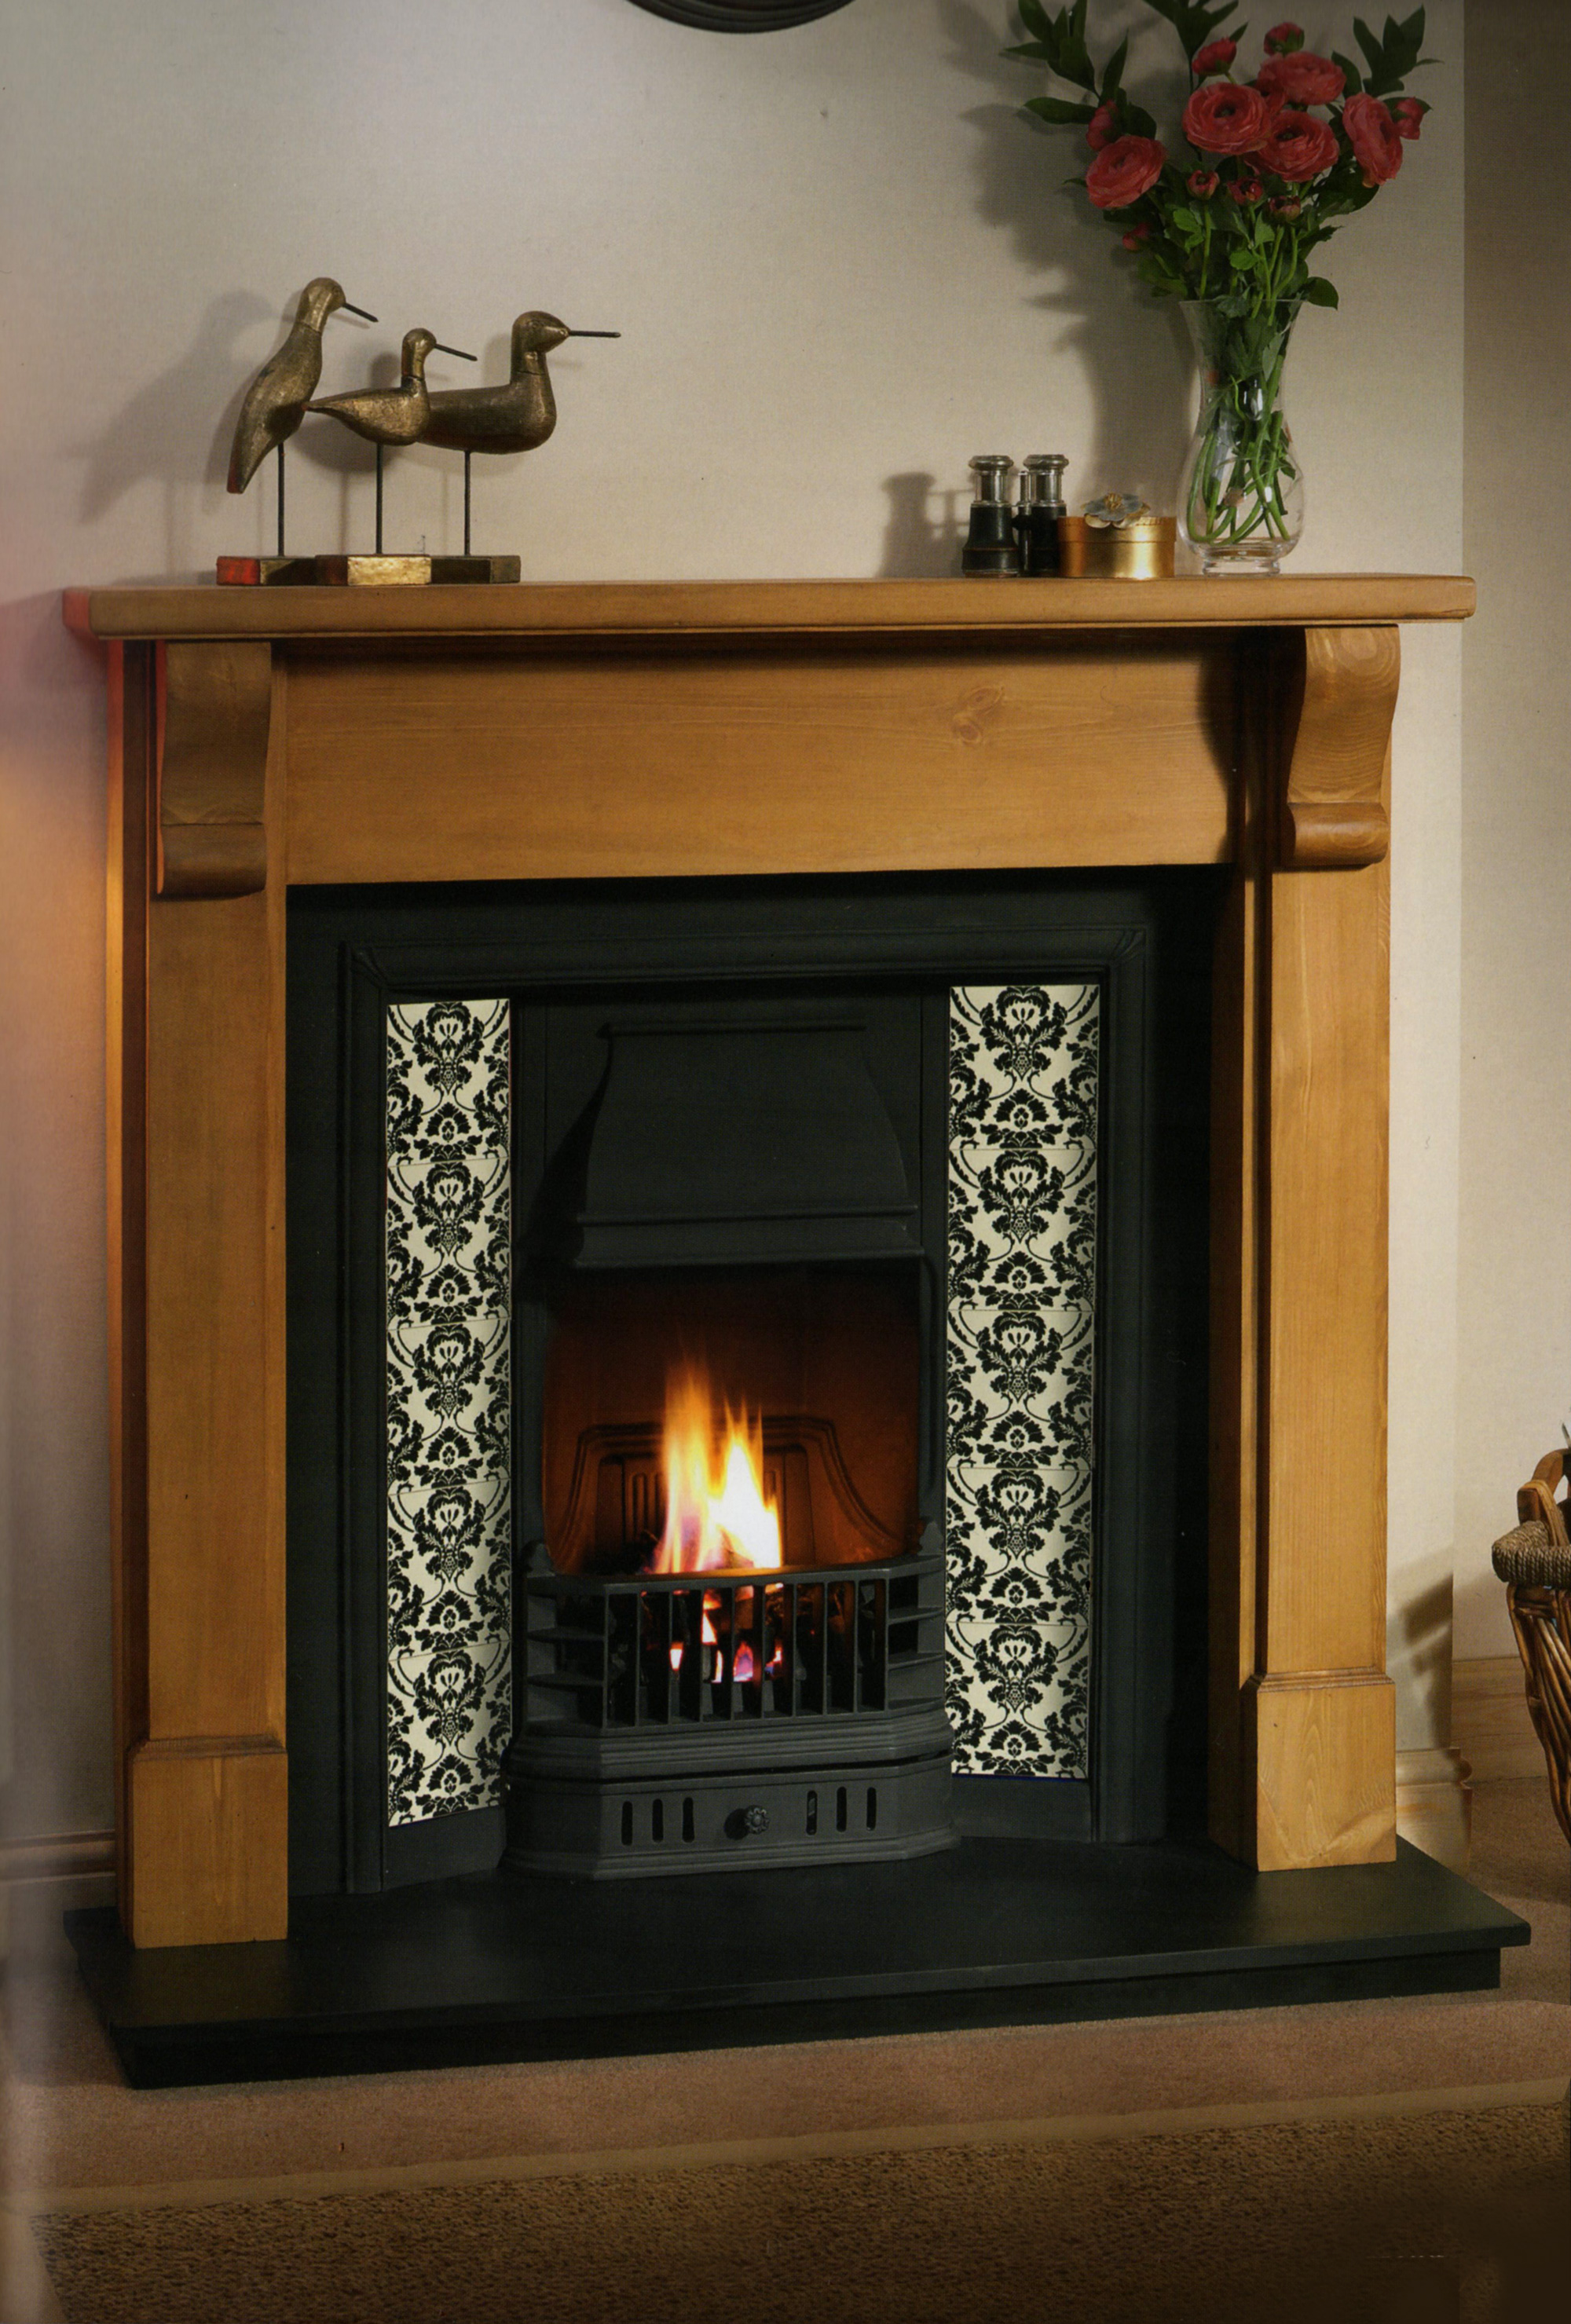 brooklyn fireplace interiors they hill cobble move so to a photos victorian could amazing fireplaces inspire renovation